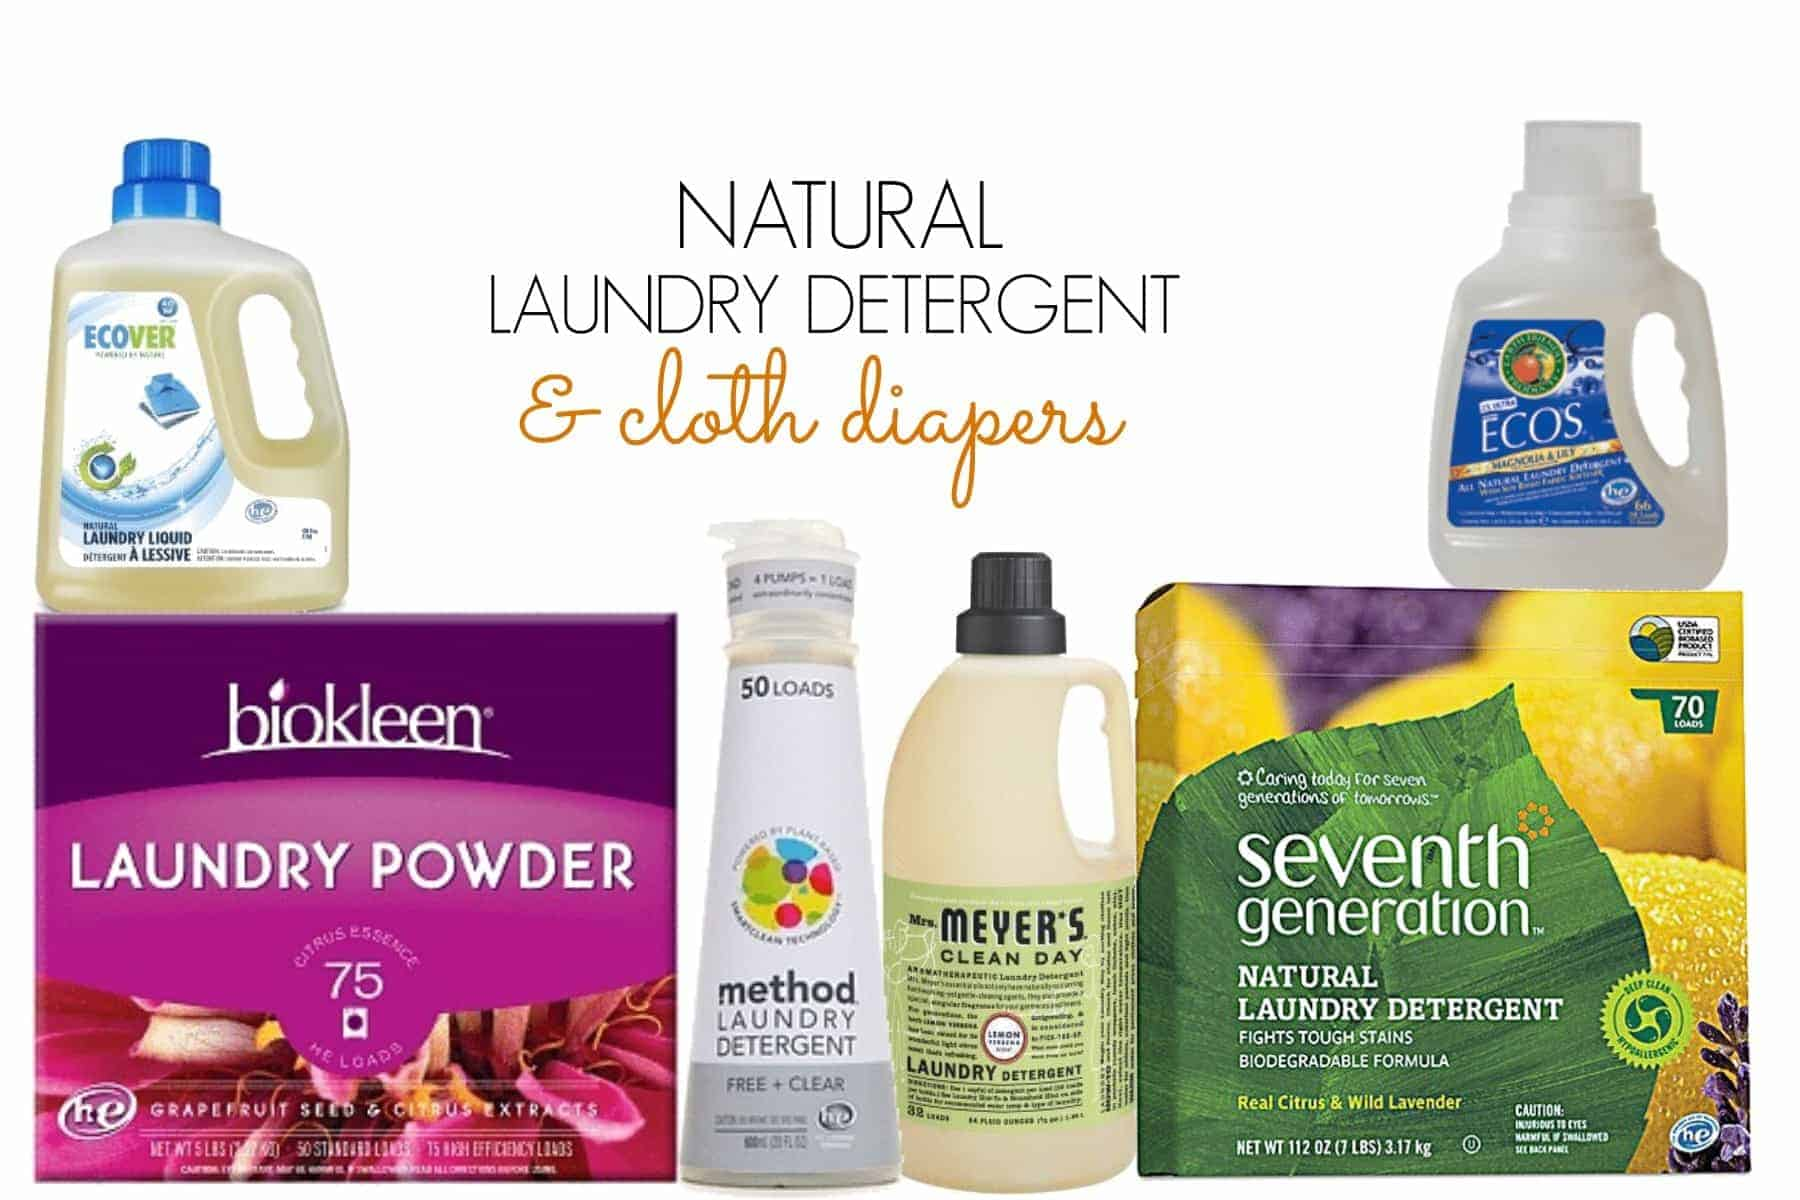 Natural laundry detergent and cloth diapers